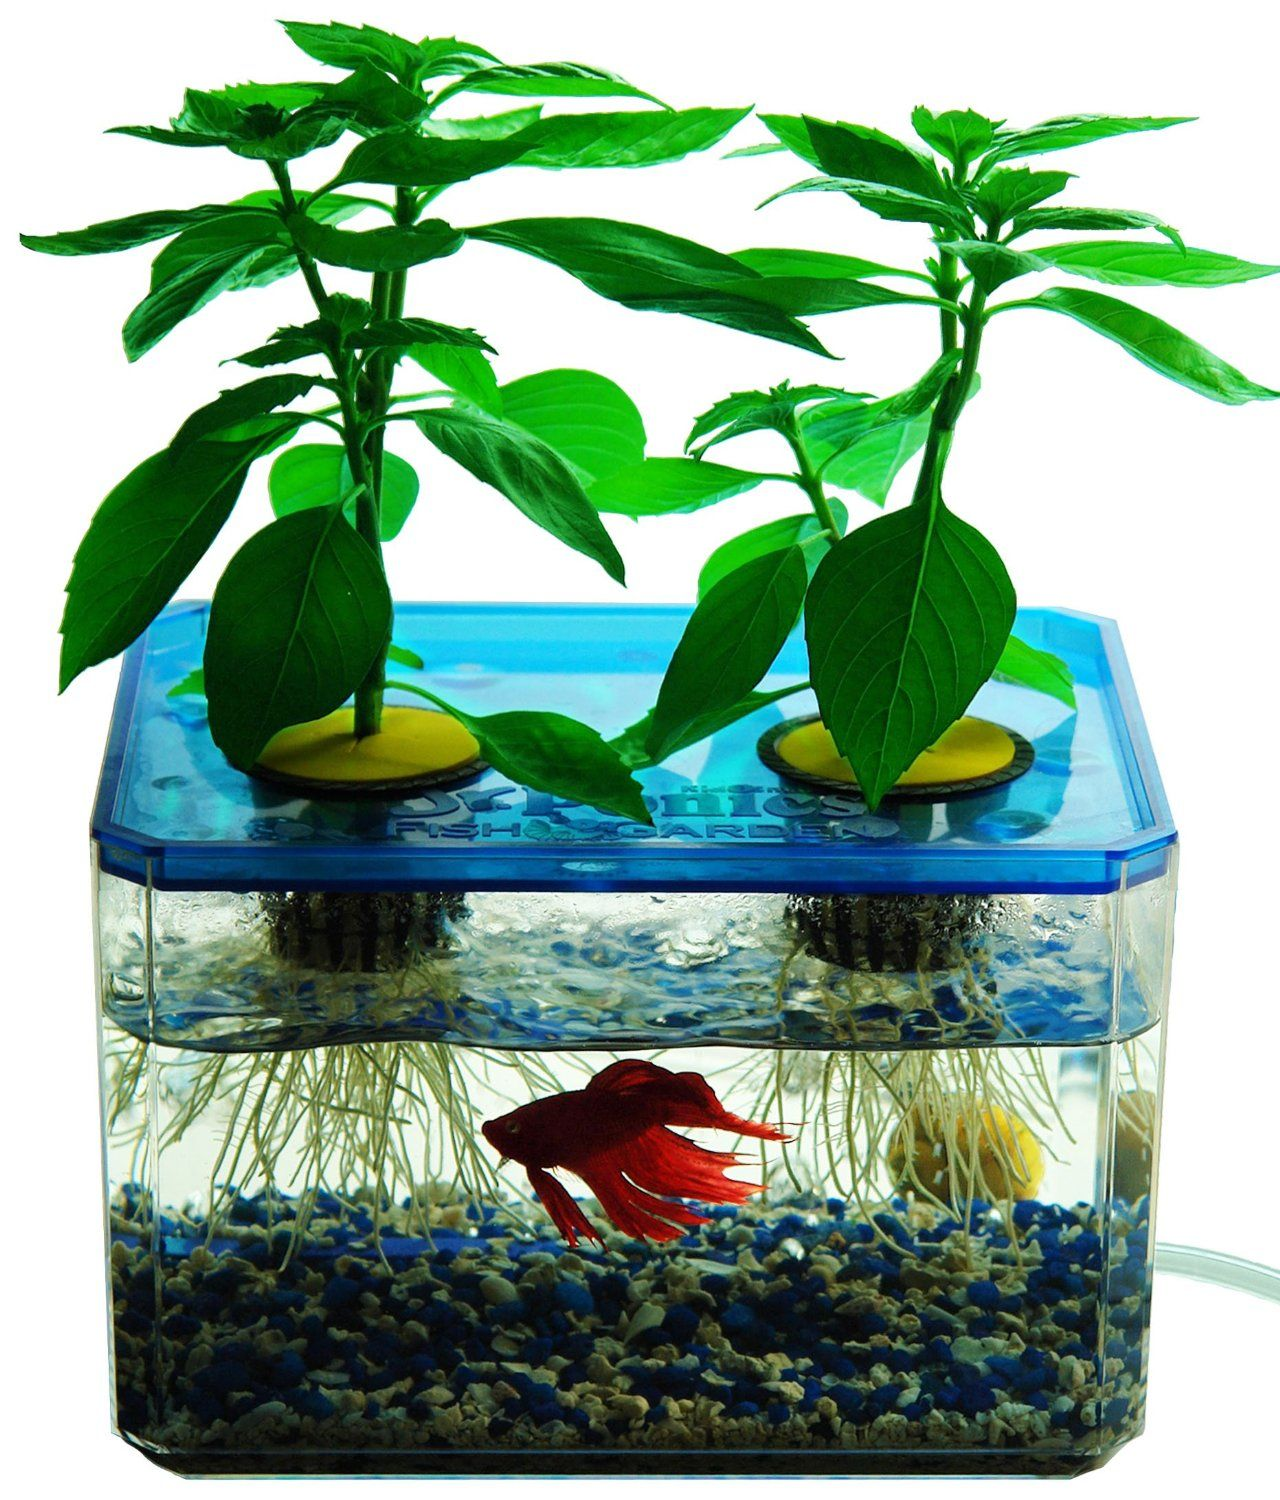 How to diy aquaponics the how to diy guide on building for Fish tank hydroponic garden